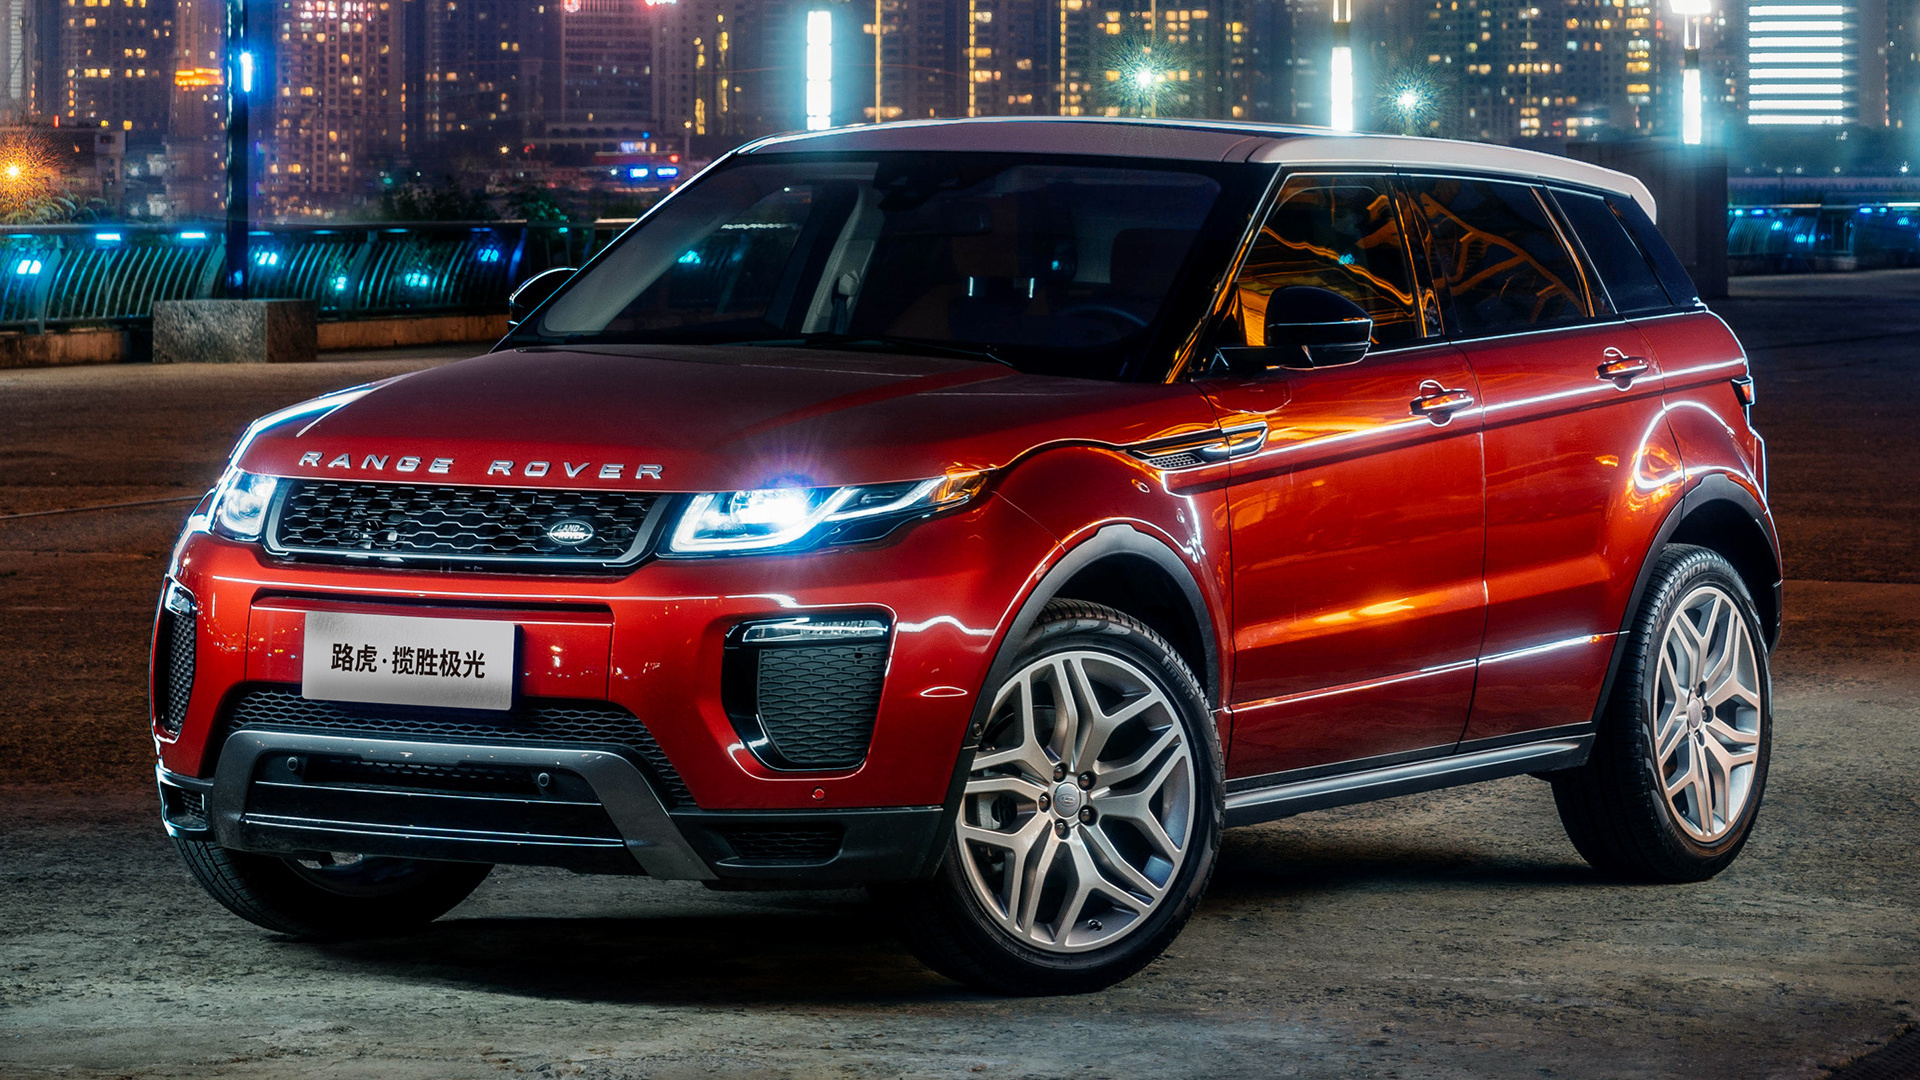 Range Rover Evoque >> 2016 Range Rover Evoque HSE Dynamic (CN) - Wallpapers and HD Images | Car Pixel